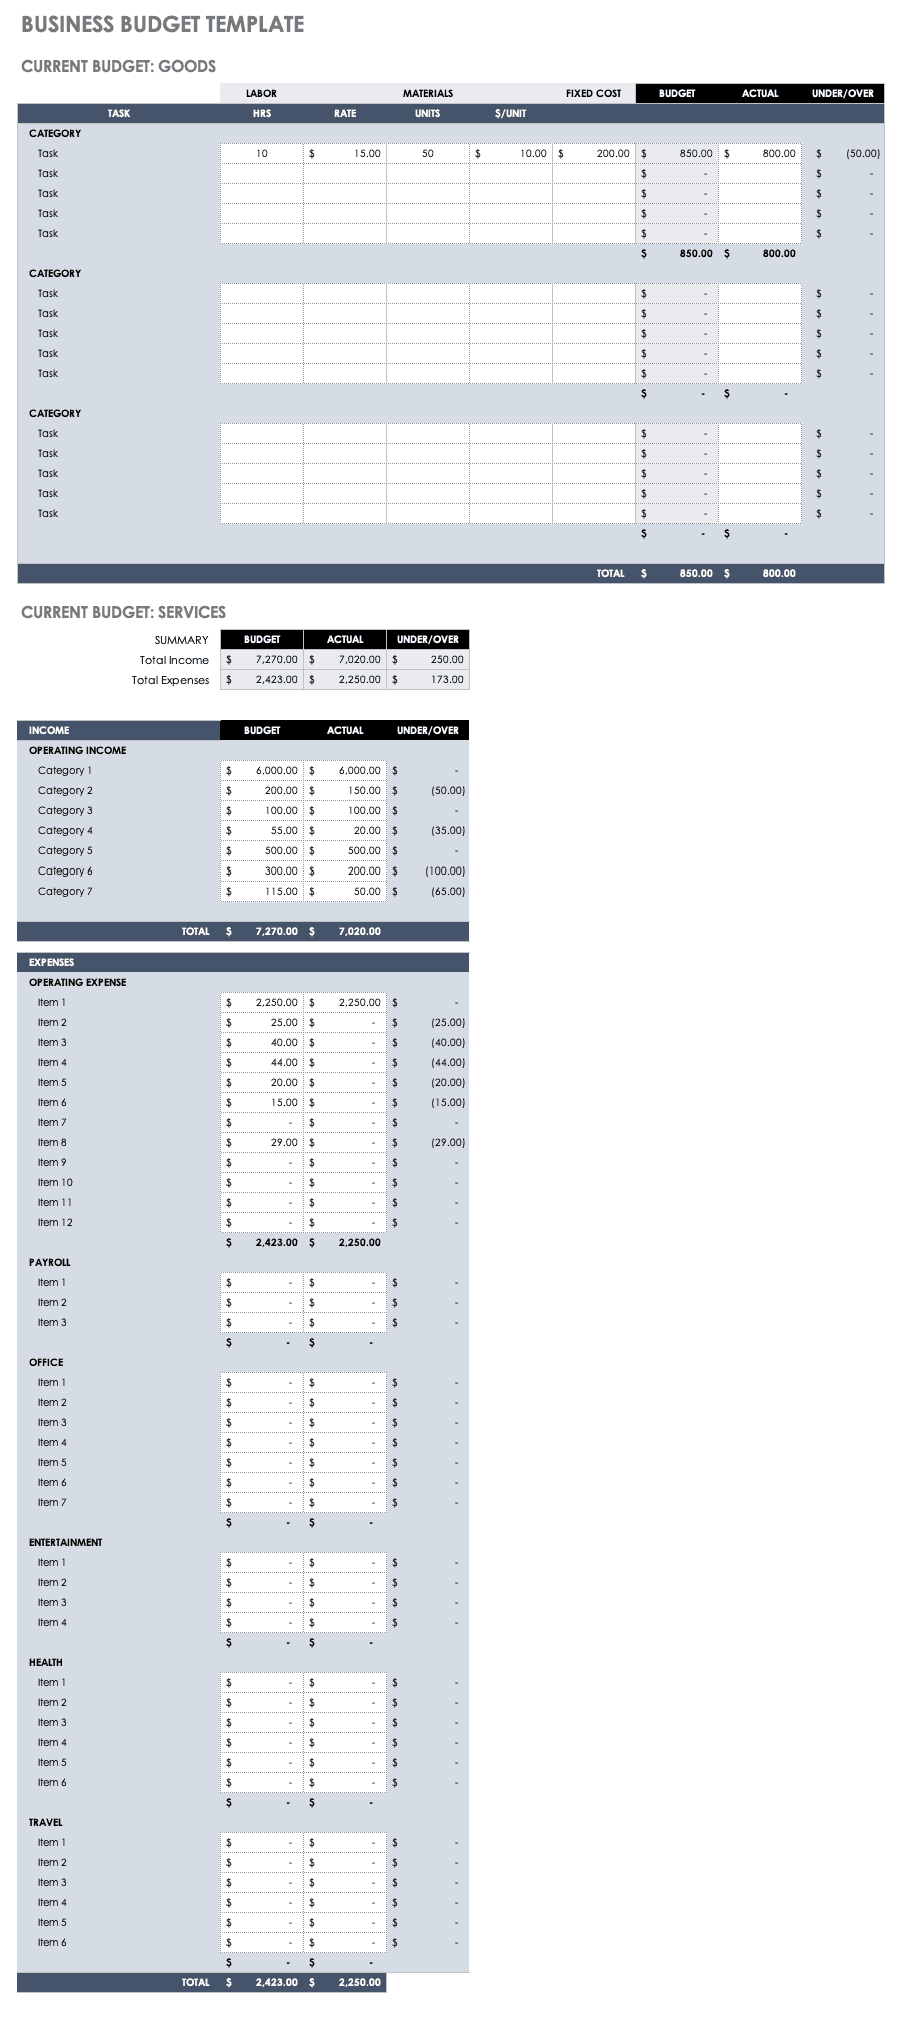 Full Size of Template Pdf Business Sale Contract Scorecard Financial Budget